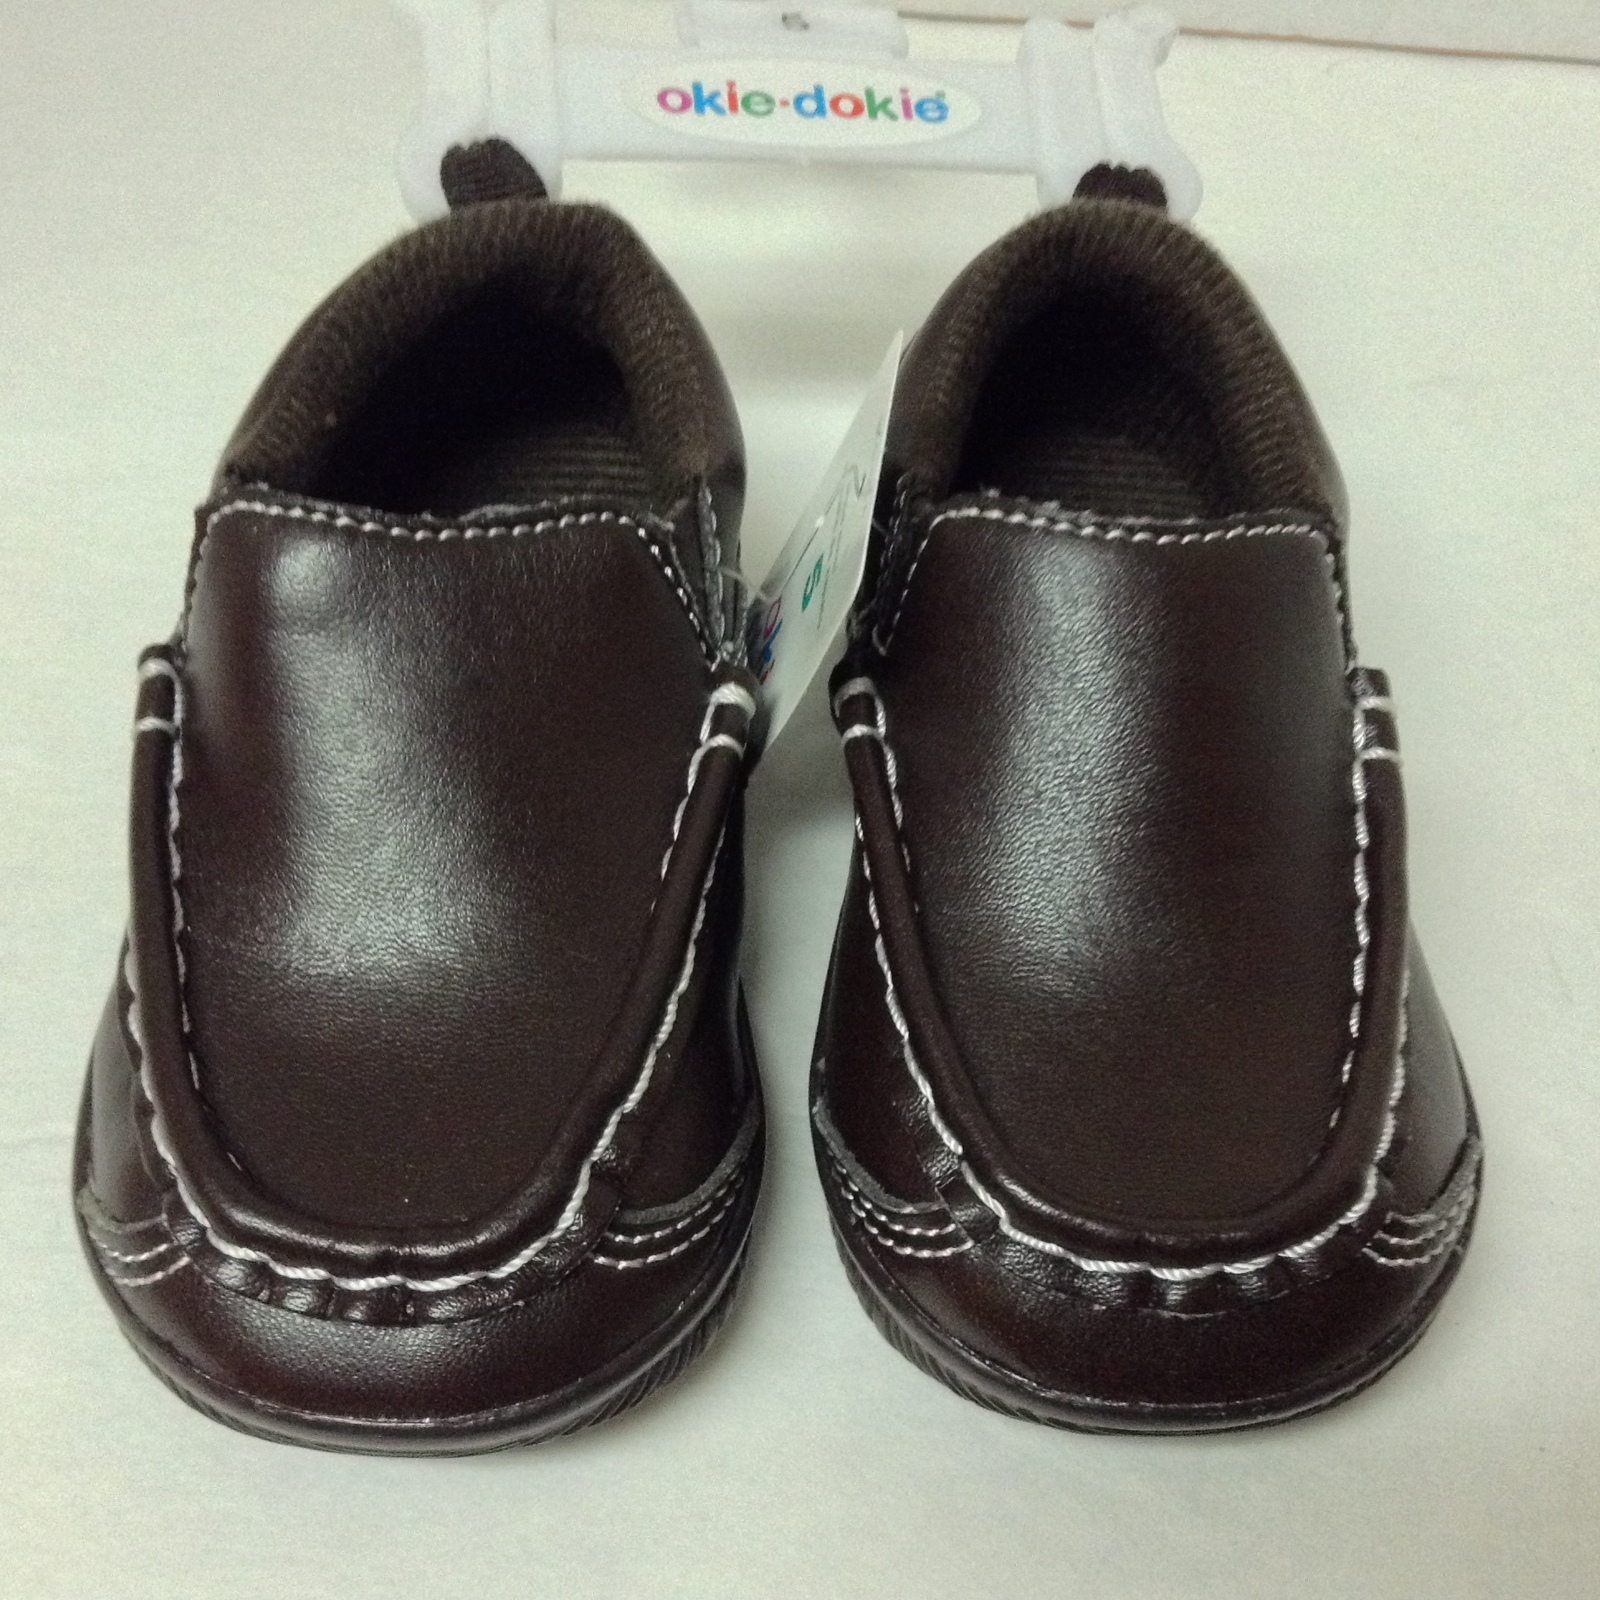 Children's Brown Faux Leather Slip On Loafers Sz 5 Medium Okie Dokie